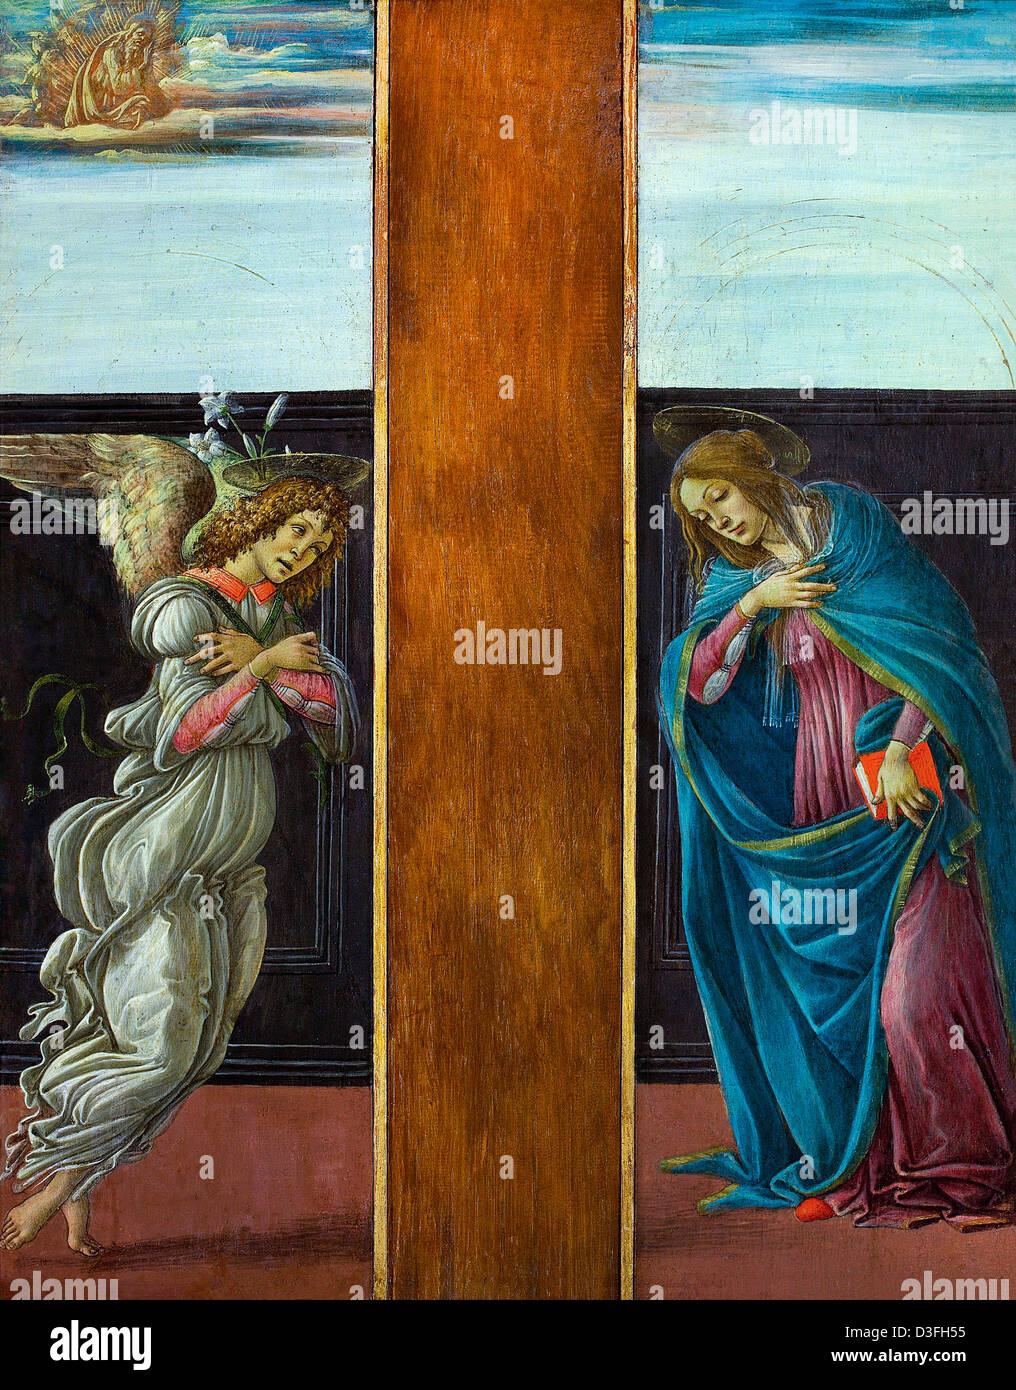 Sandro Botticelli, The Annunciation 1490 Tempera on canvas. Pushkin Museum, Moscow - Stock Image